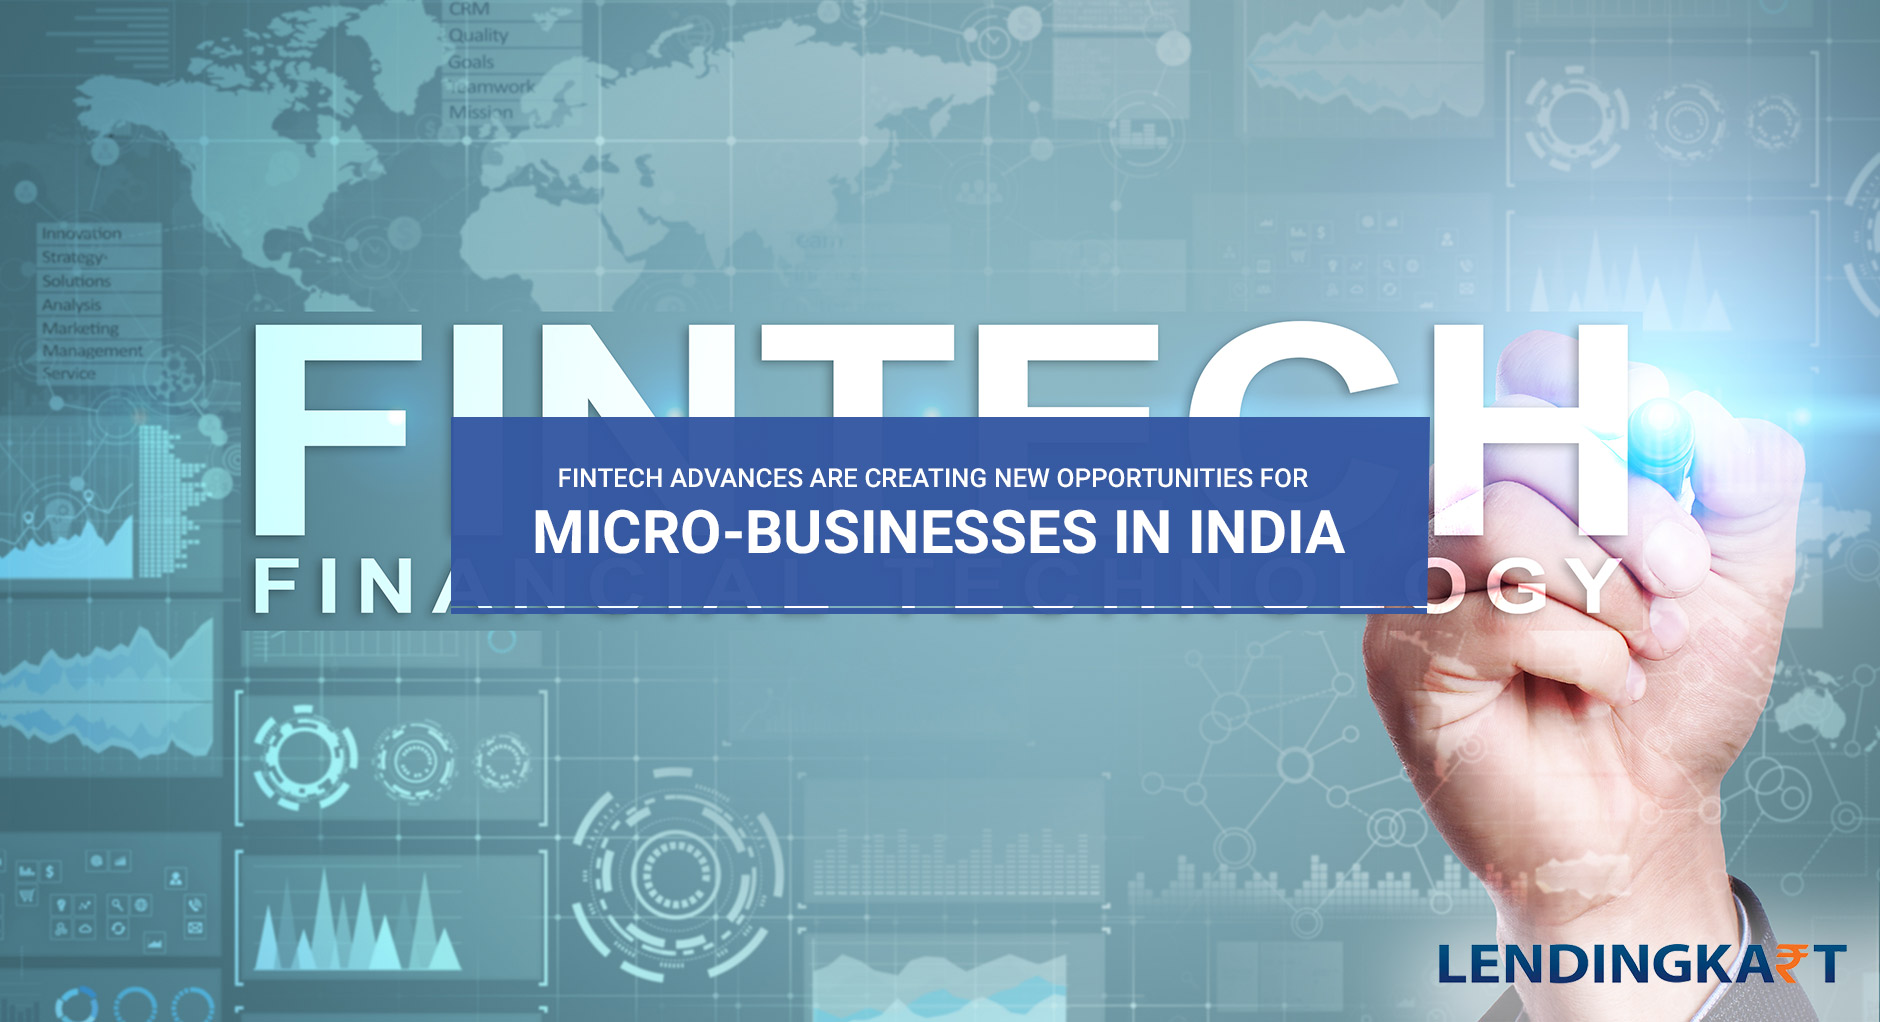 Fintech Advances Are Creating New Opportunities For Micro-Businesses In India